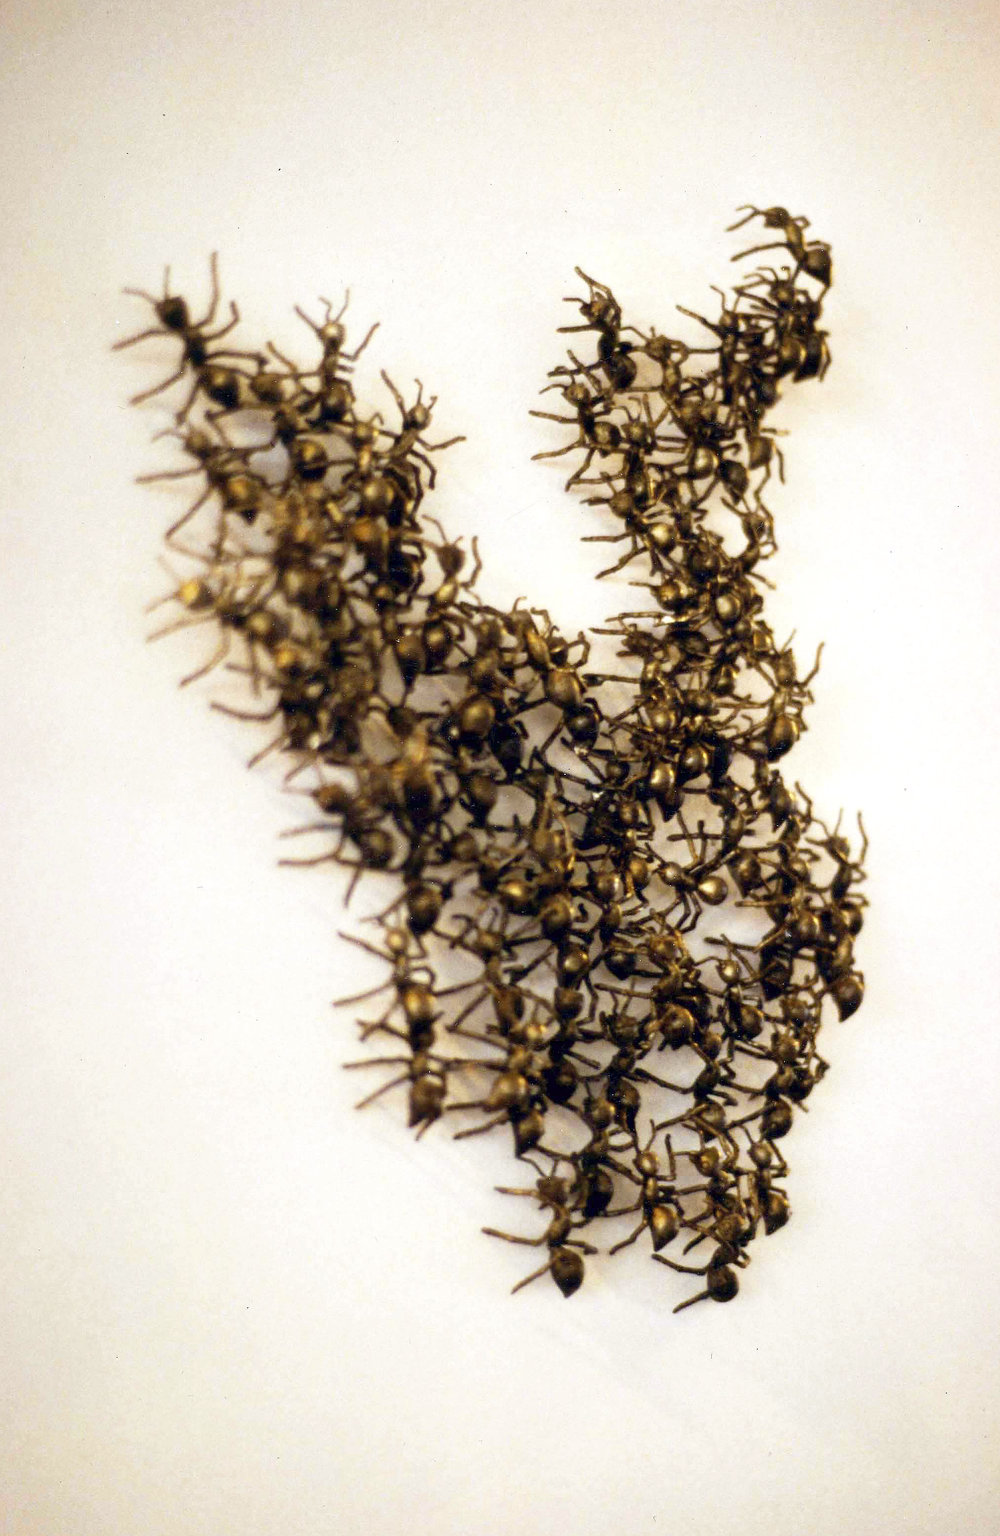 Ant Wall Sculpture - Bronze